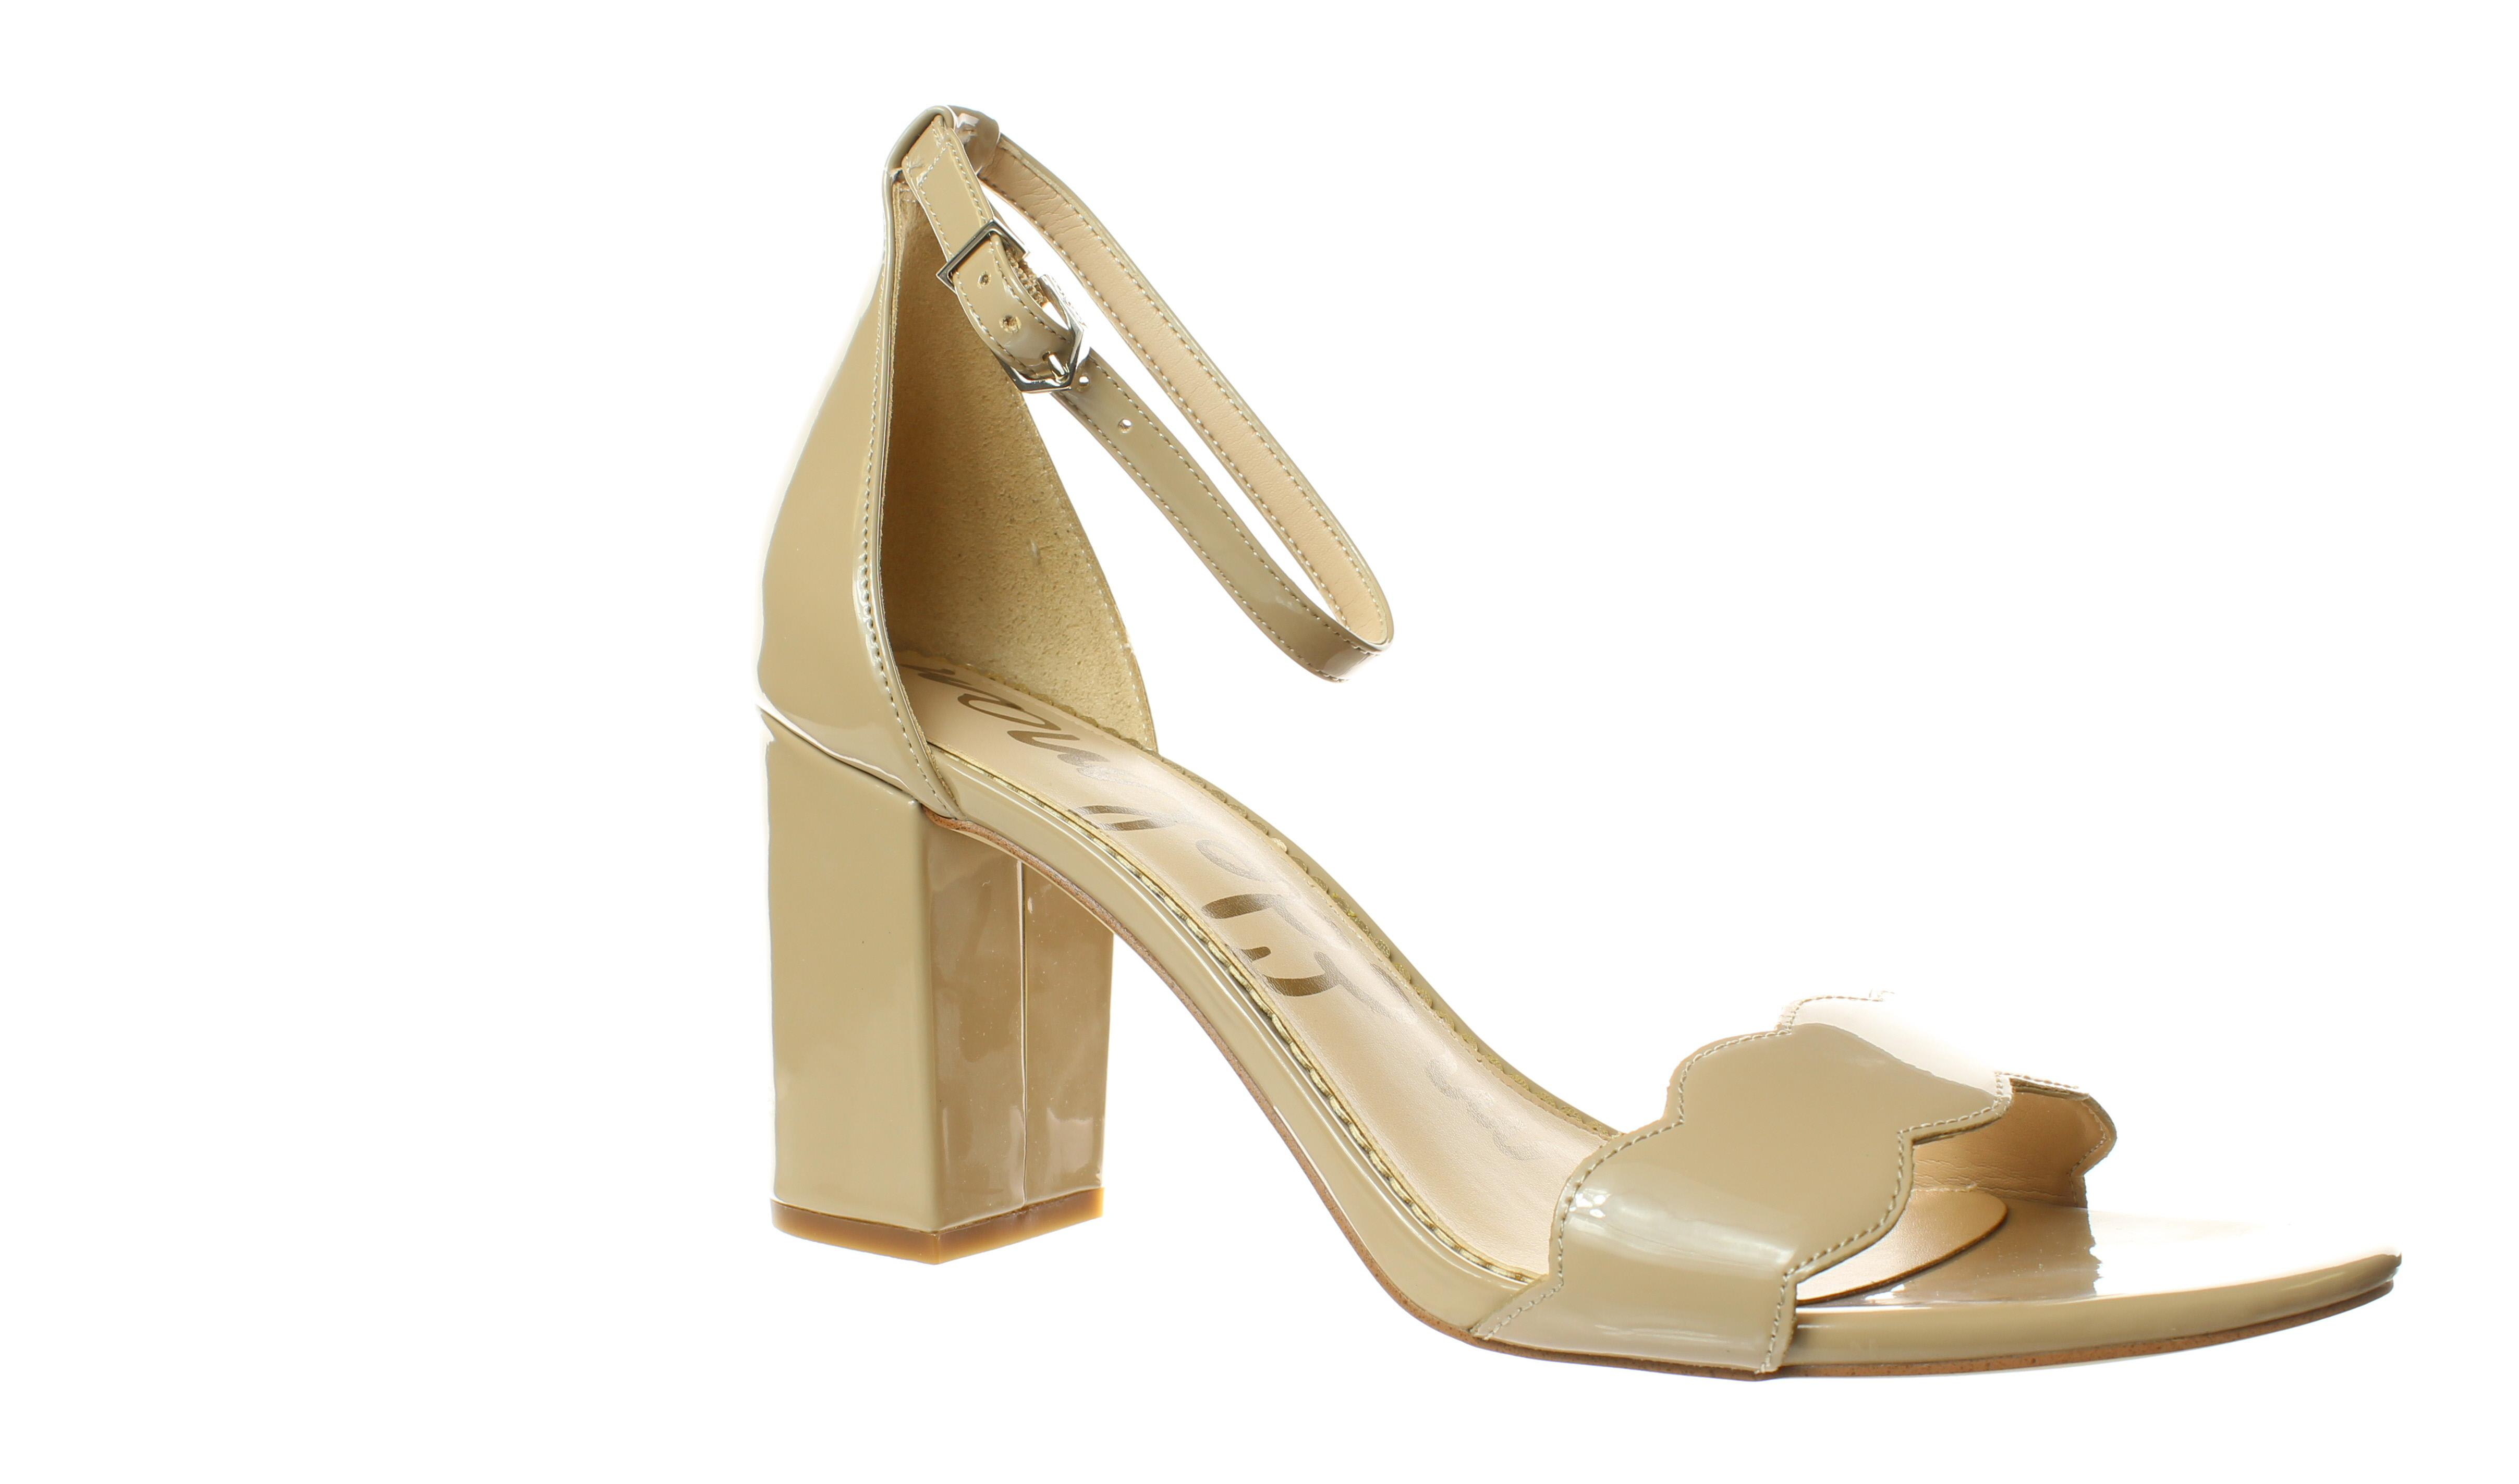 Nude Patent Ankle Strap Stilettos Strappy Sandals High